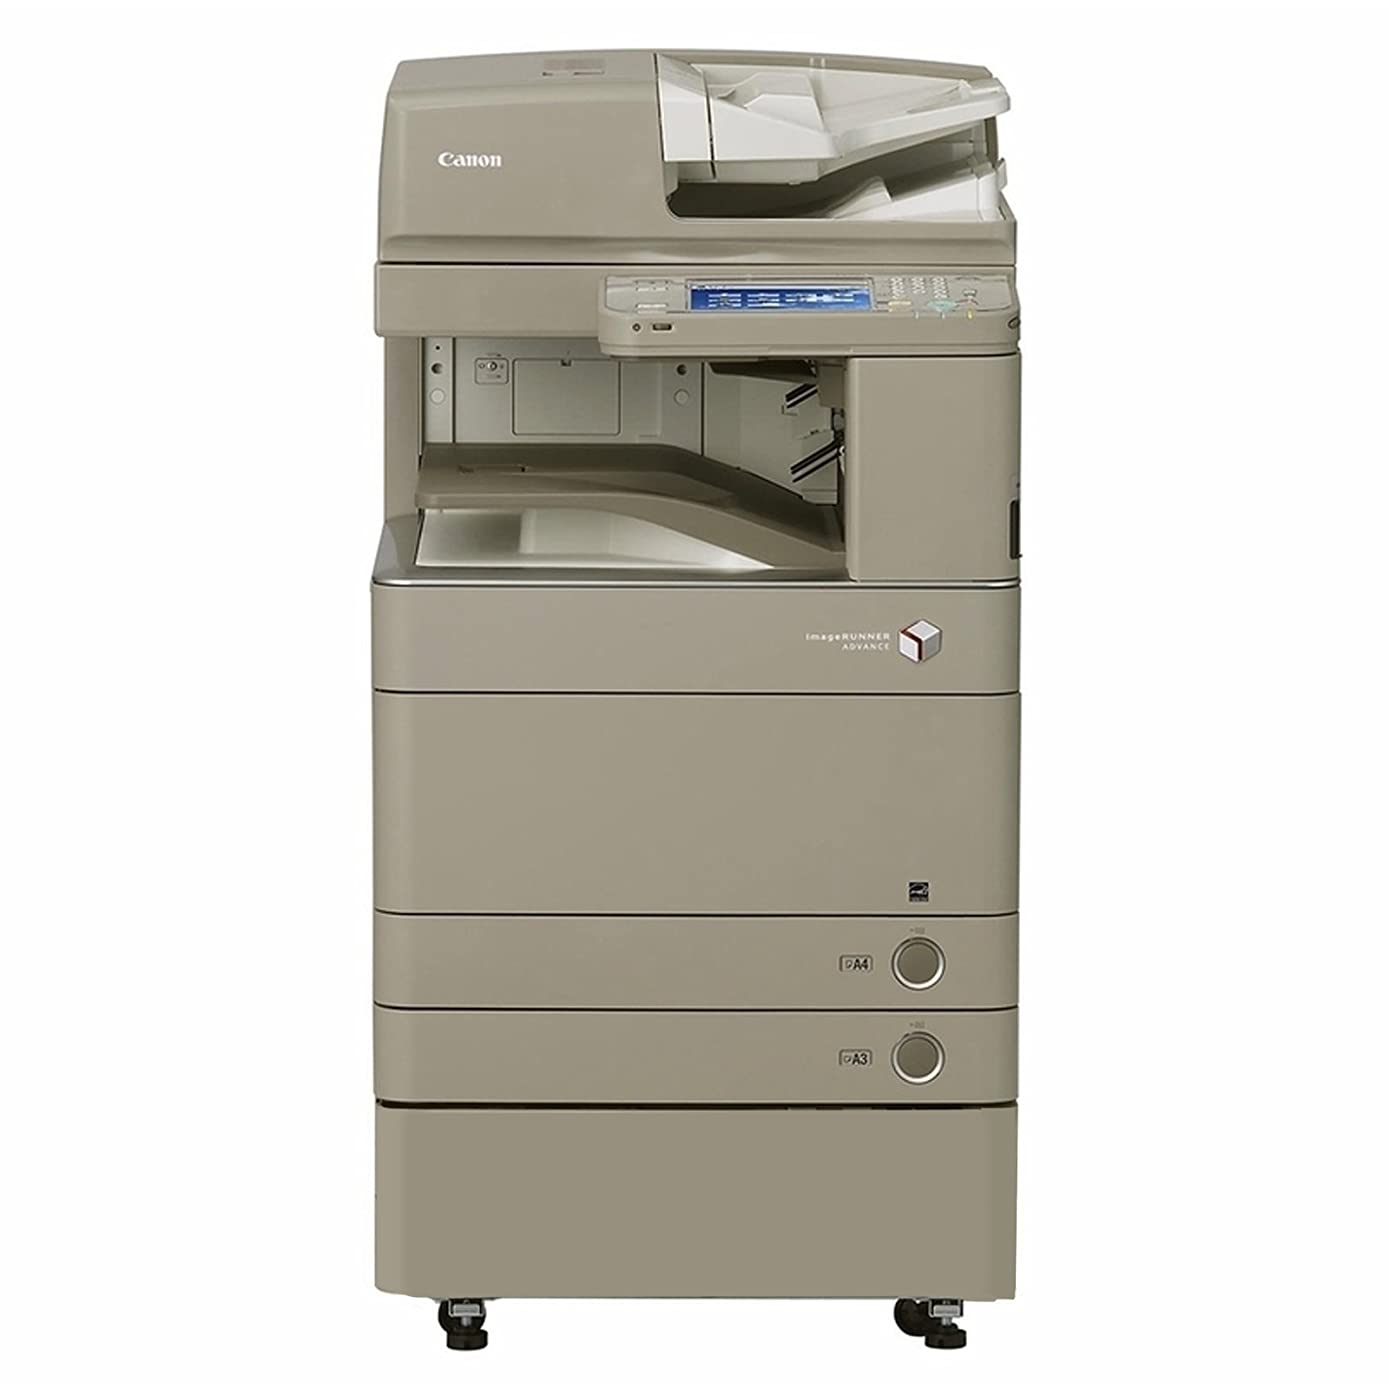 Refurbished Canon ImageRunner Advance C5051 Color Copier - 51ppm, Copy, Print, Scan, Network, Duplex, USB Direct Print/Scan, 2 Trays and Stand